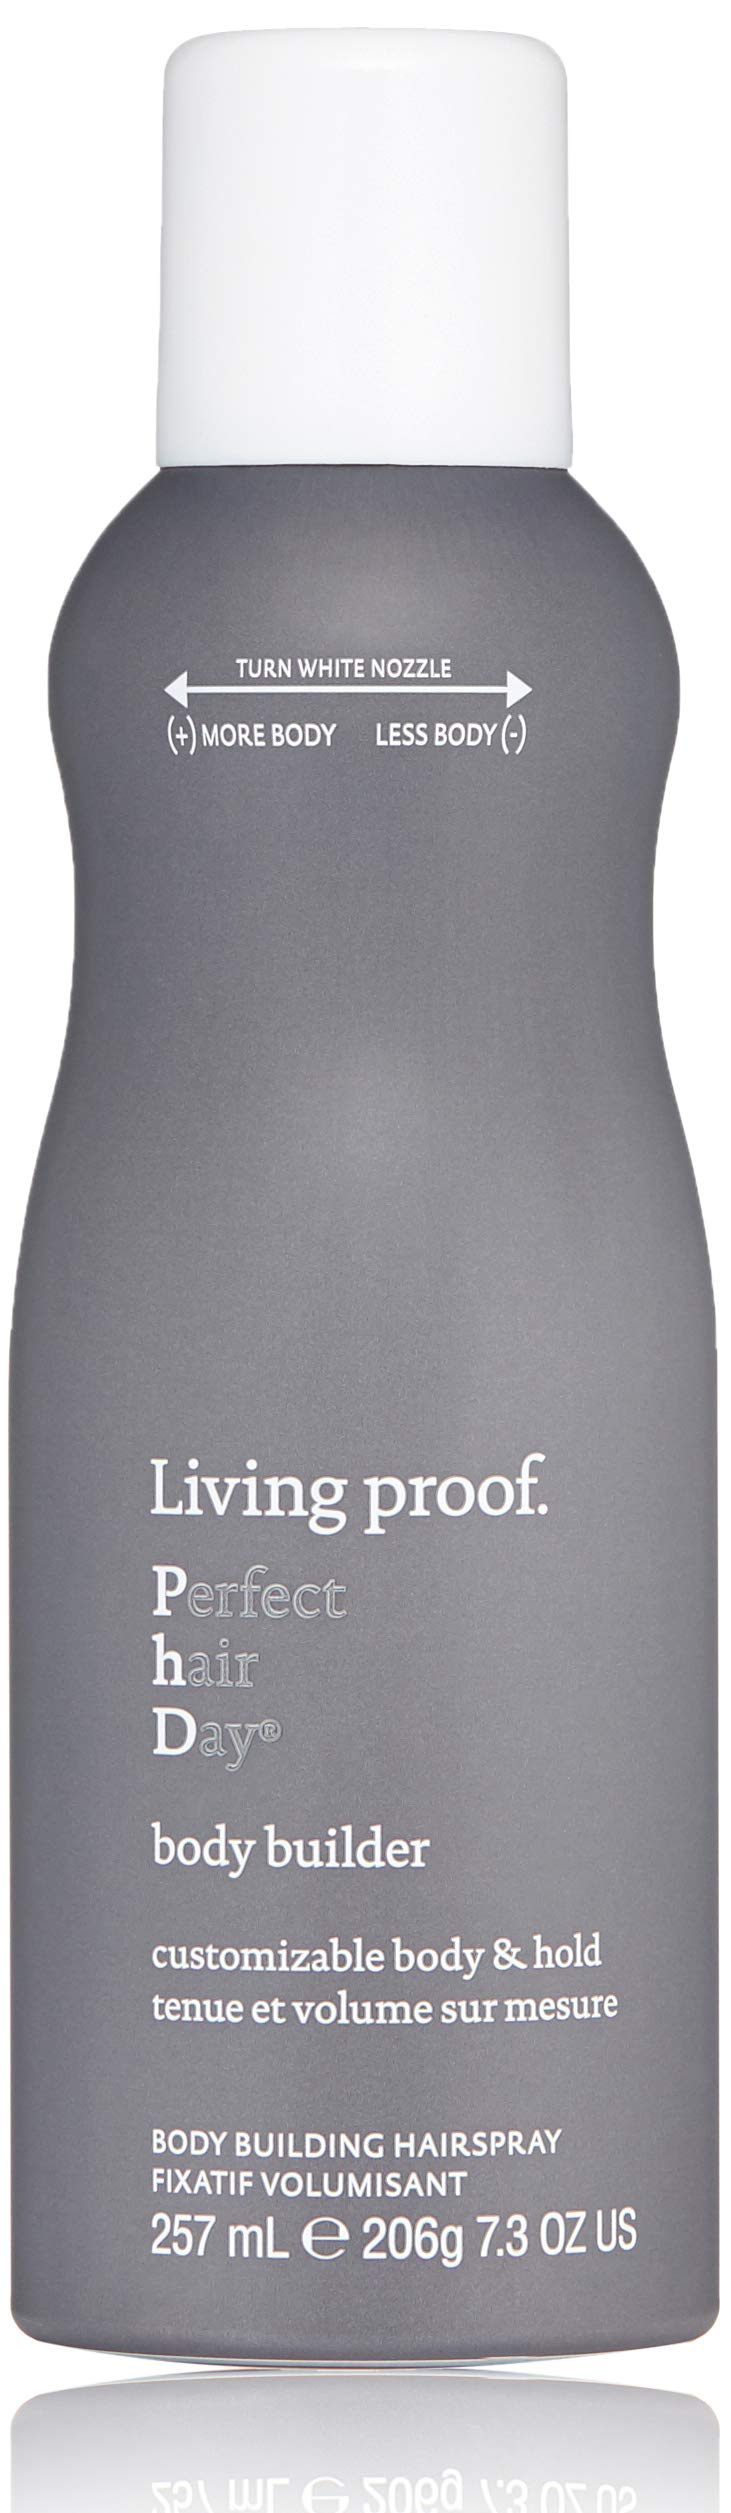 Living Proof Perfect Hair Day (phd) Body Builder 7.3 oz by Living Proof